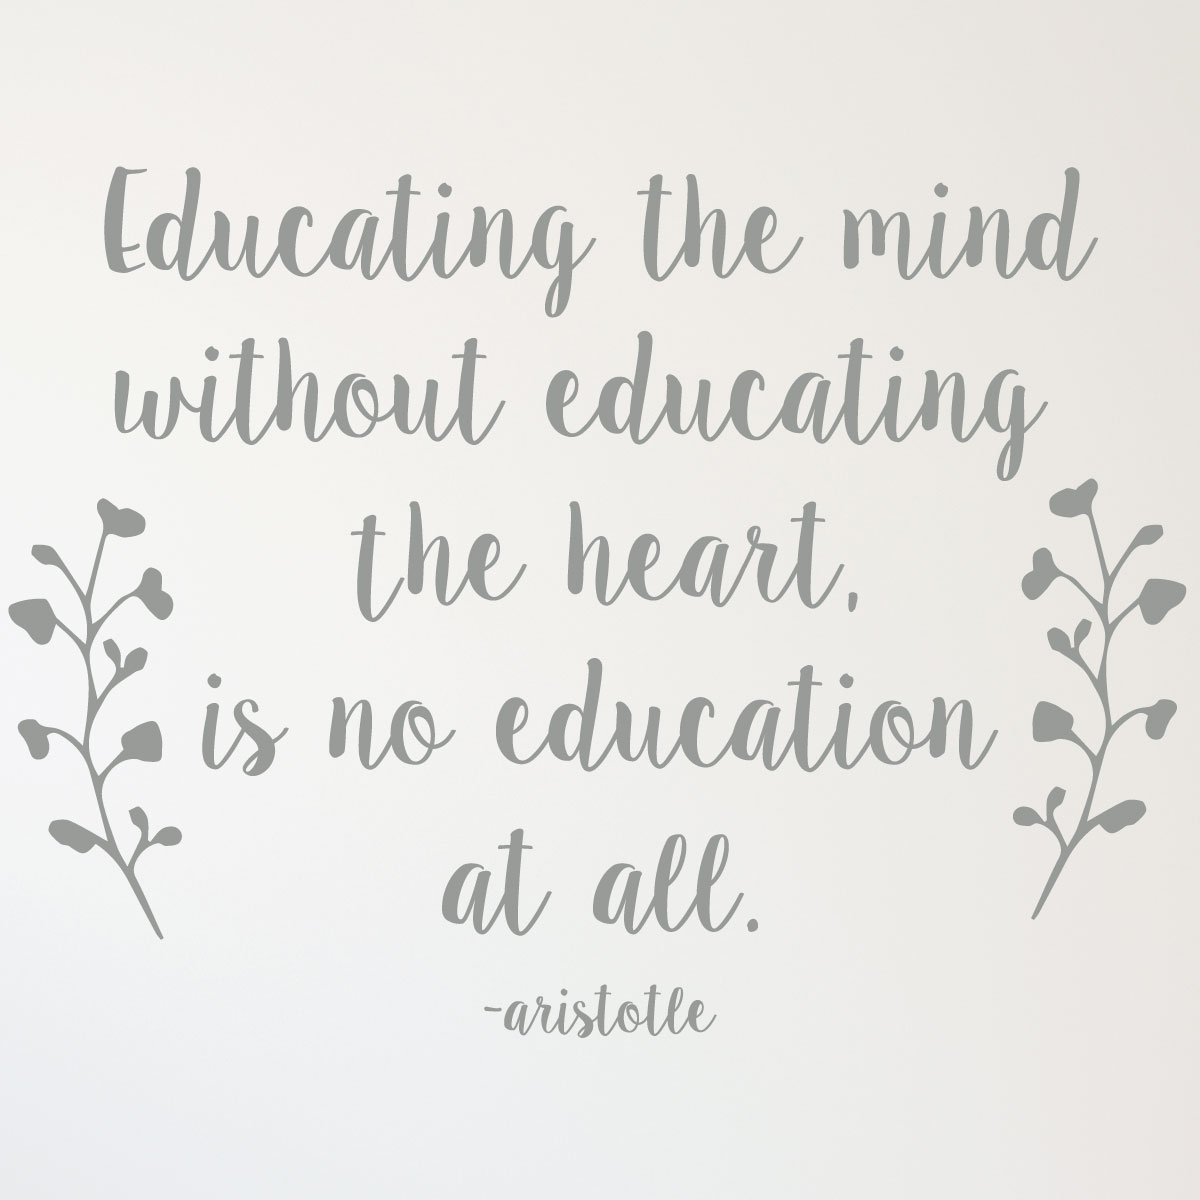 Image result for educating the mind without educating the heart quote